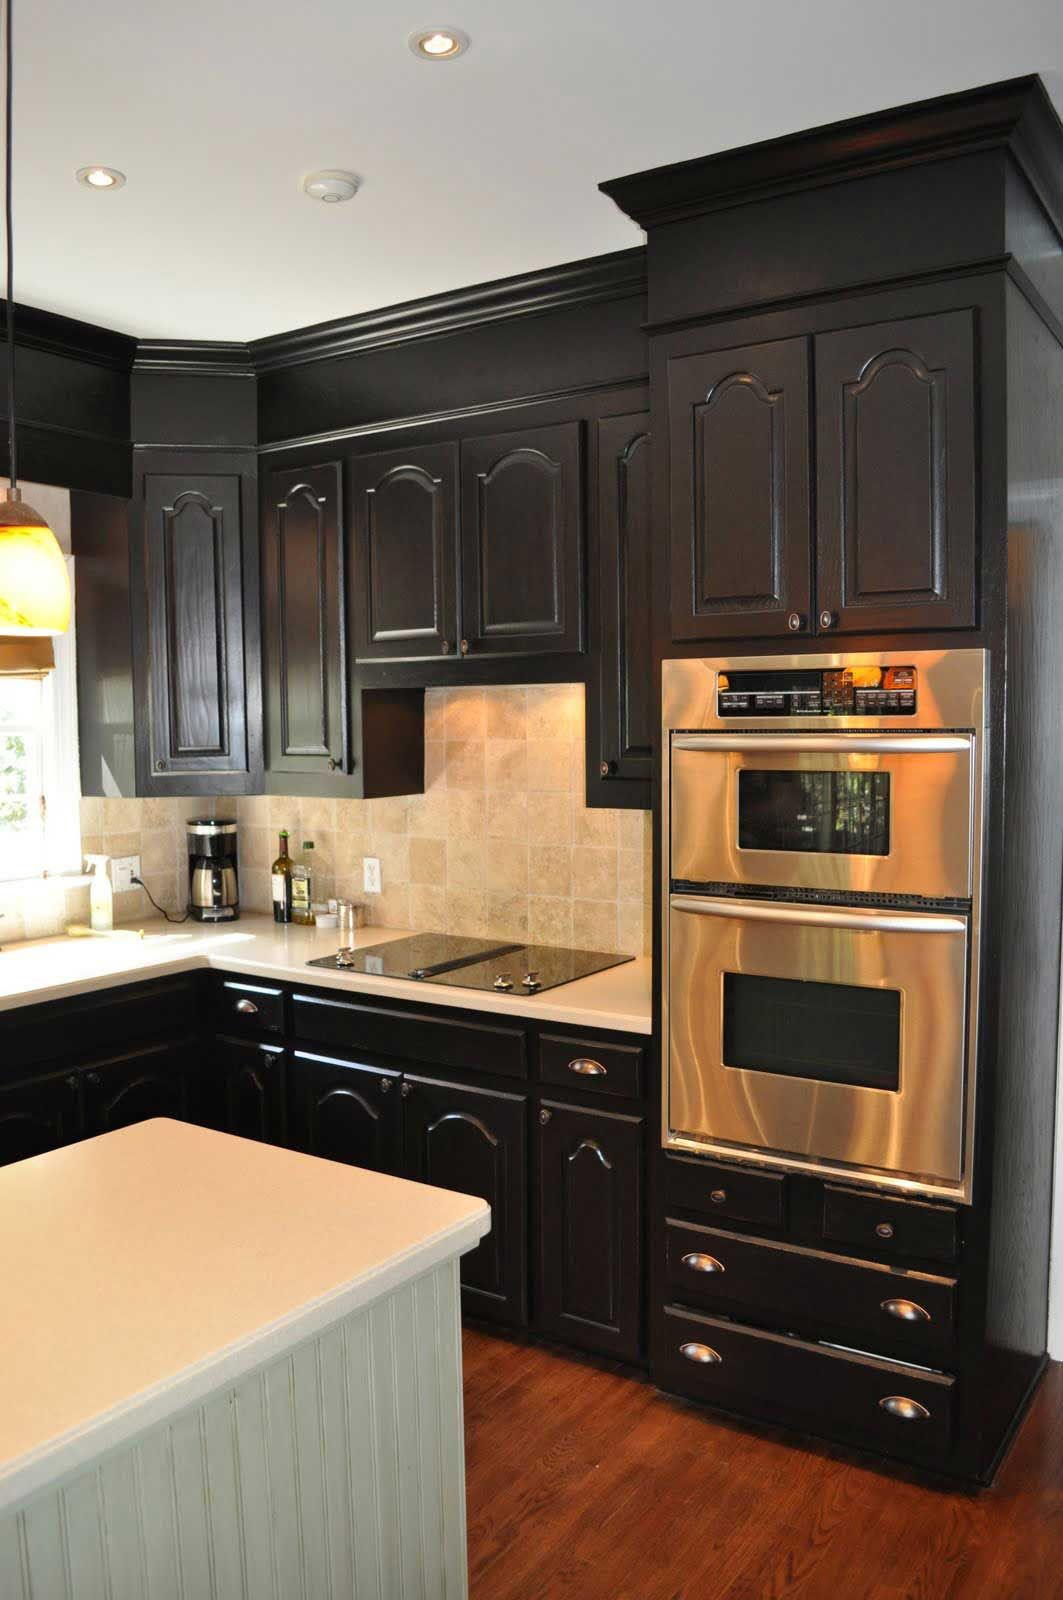 painted black cabinets images interior painting kitchen cabinet